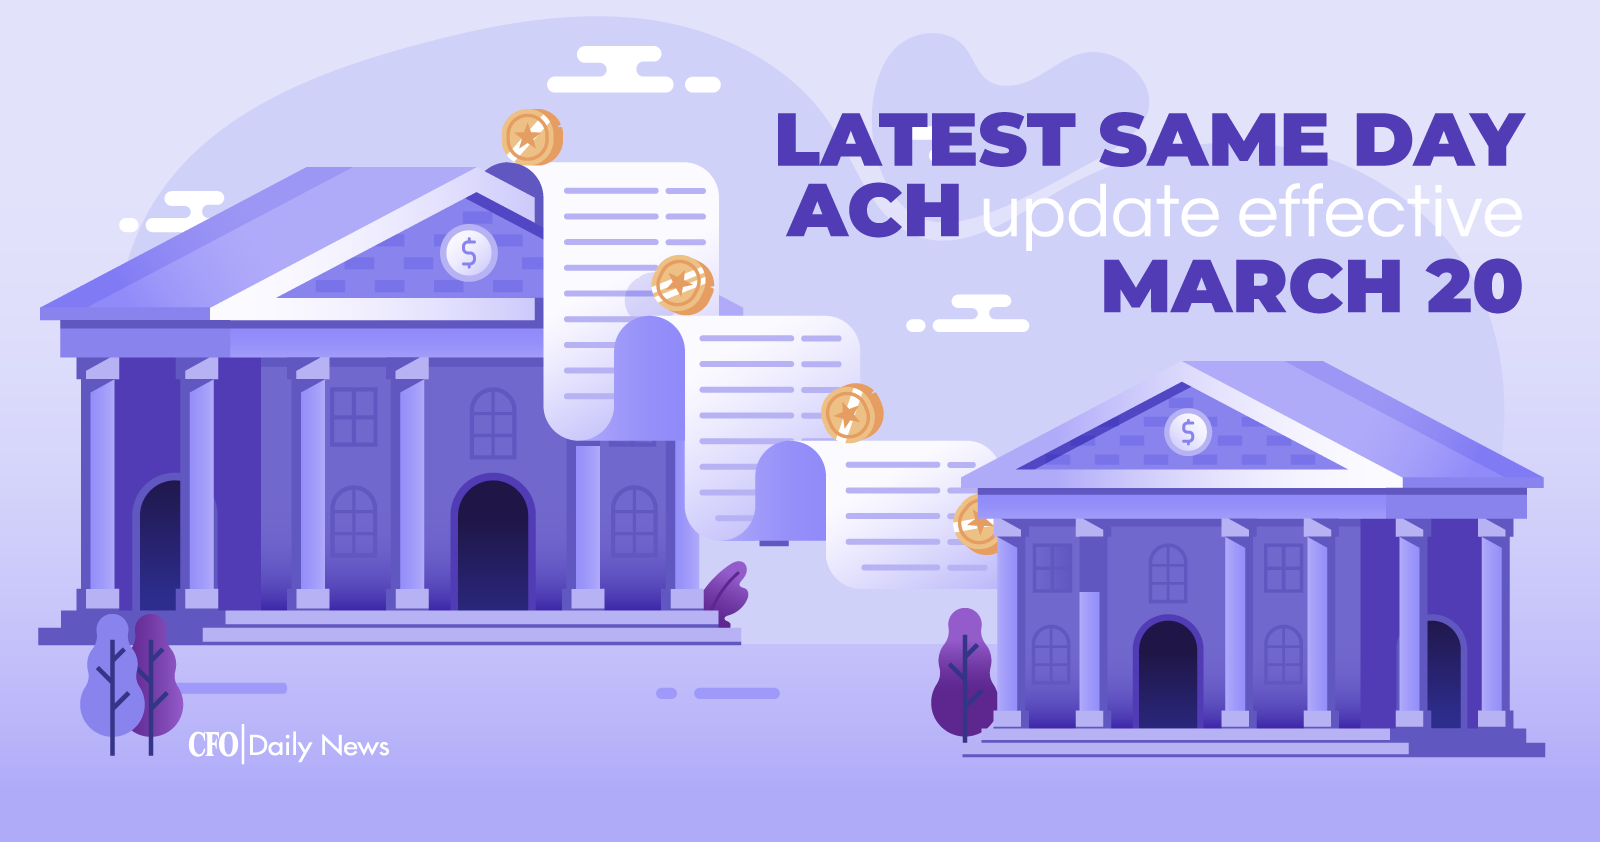 Latest Same Day ACH update effective March 20